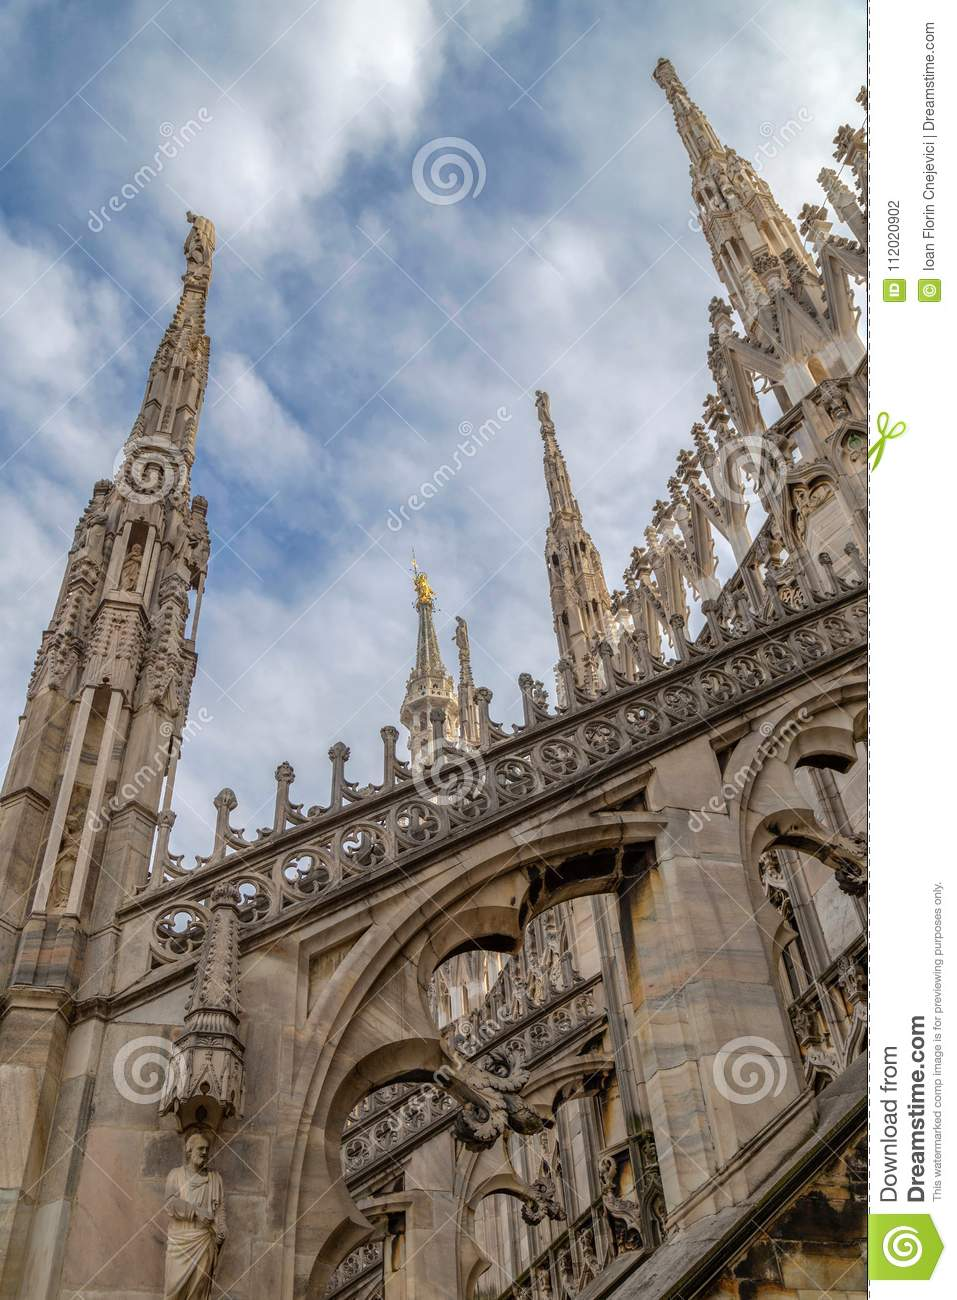 Architectonic details of the Milan Cathedral